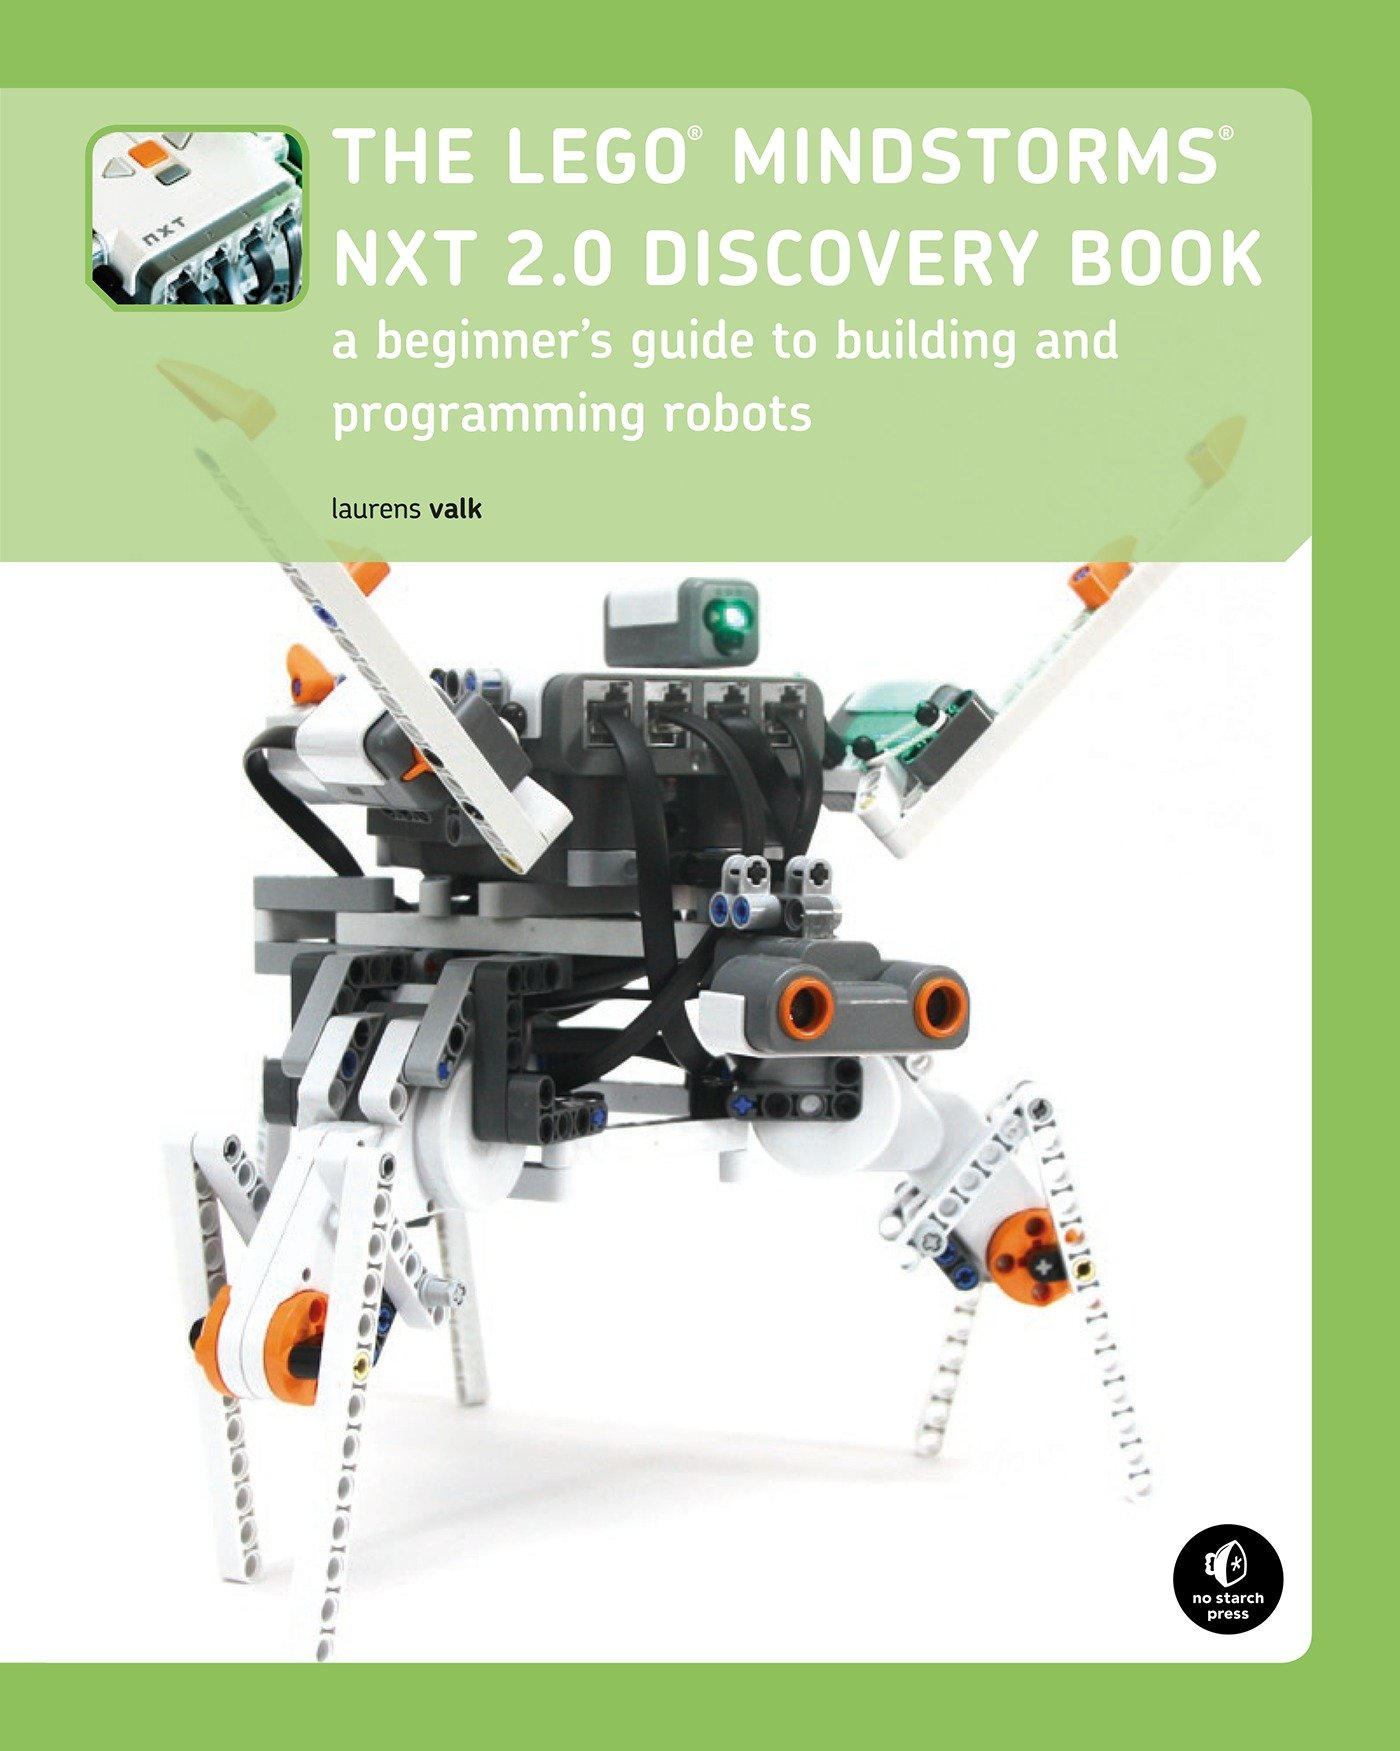 Image OfThe LEGO MINDSTORMS NXT 2.0 Discovery Book: A Beginner's Guide To Building And Programming Robots (English Edition)